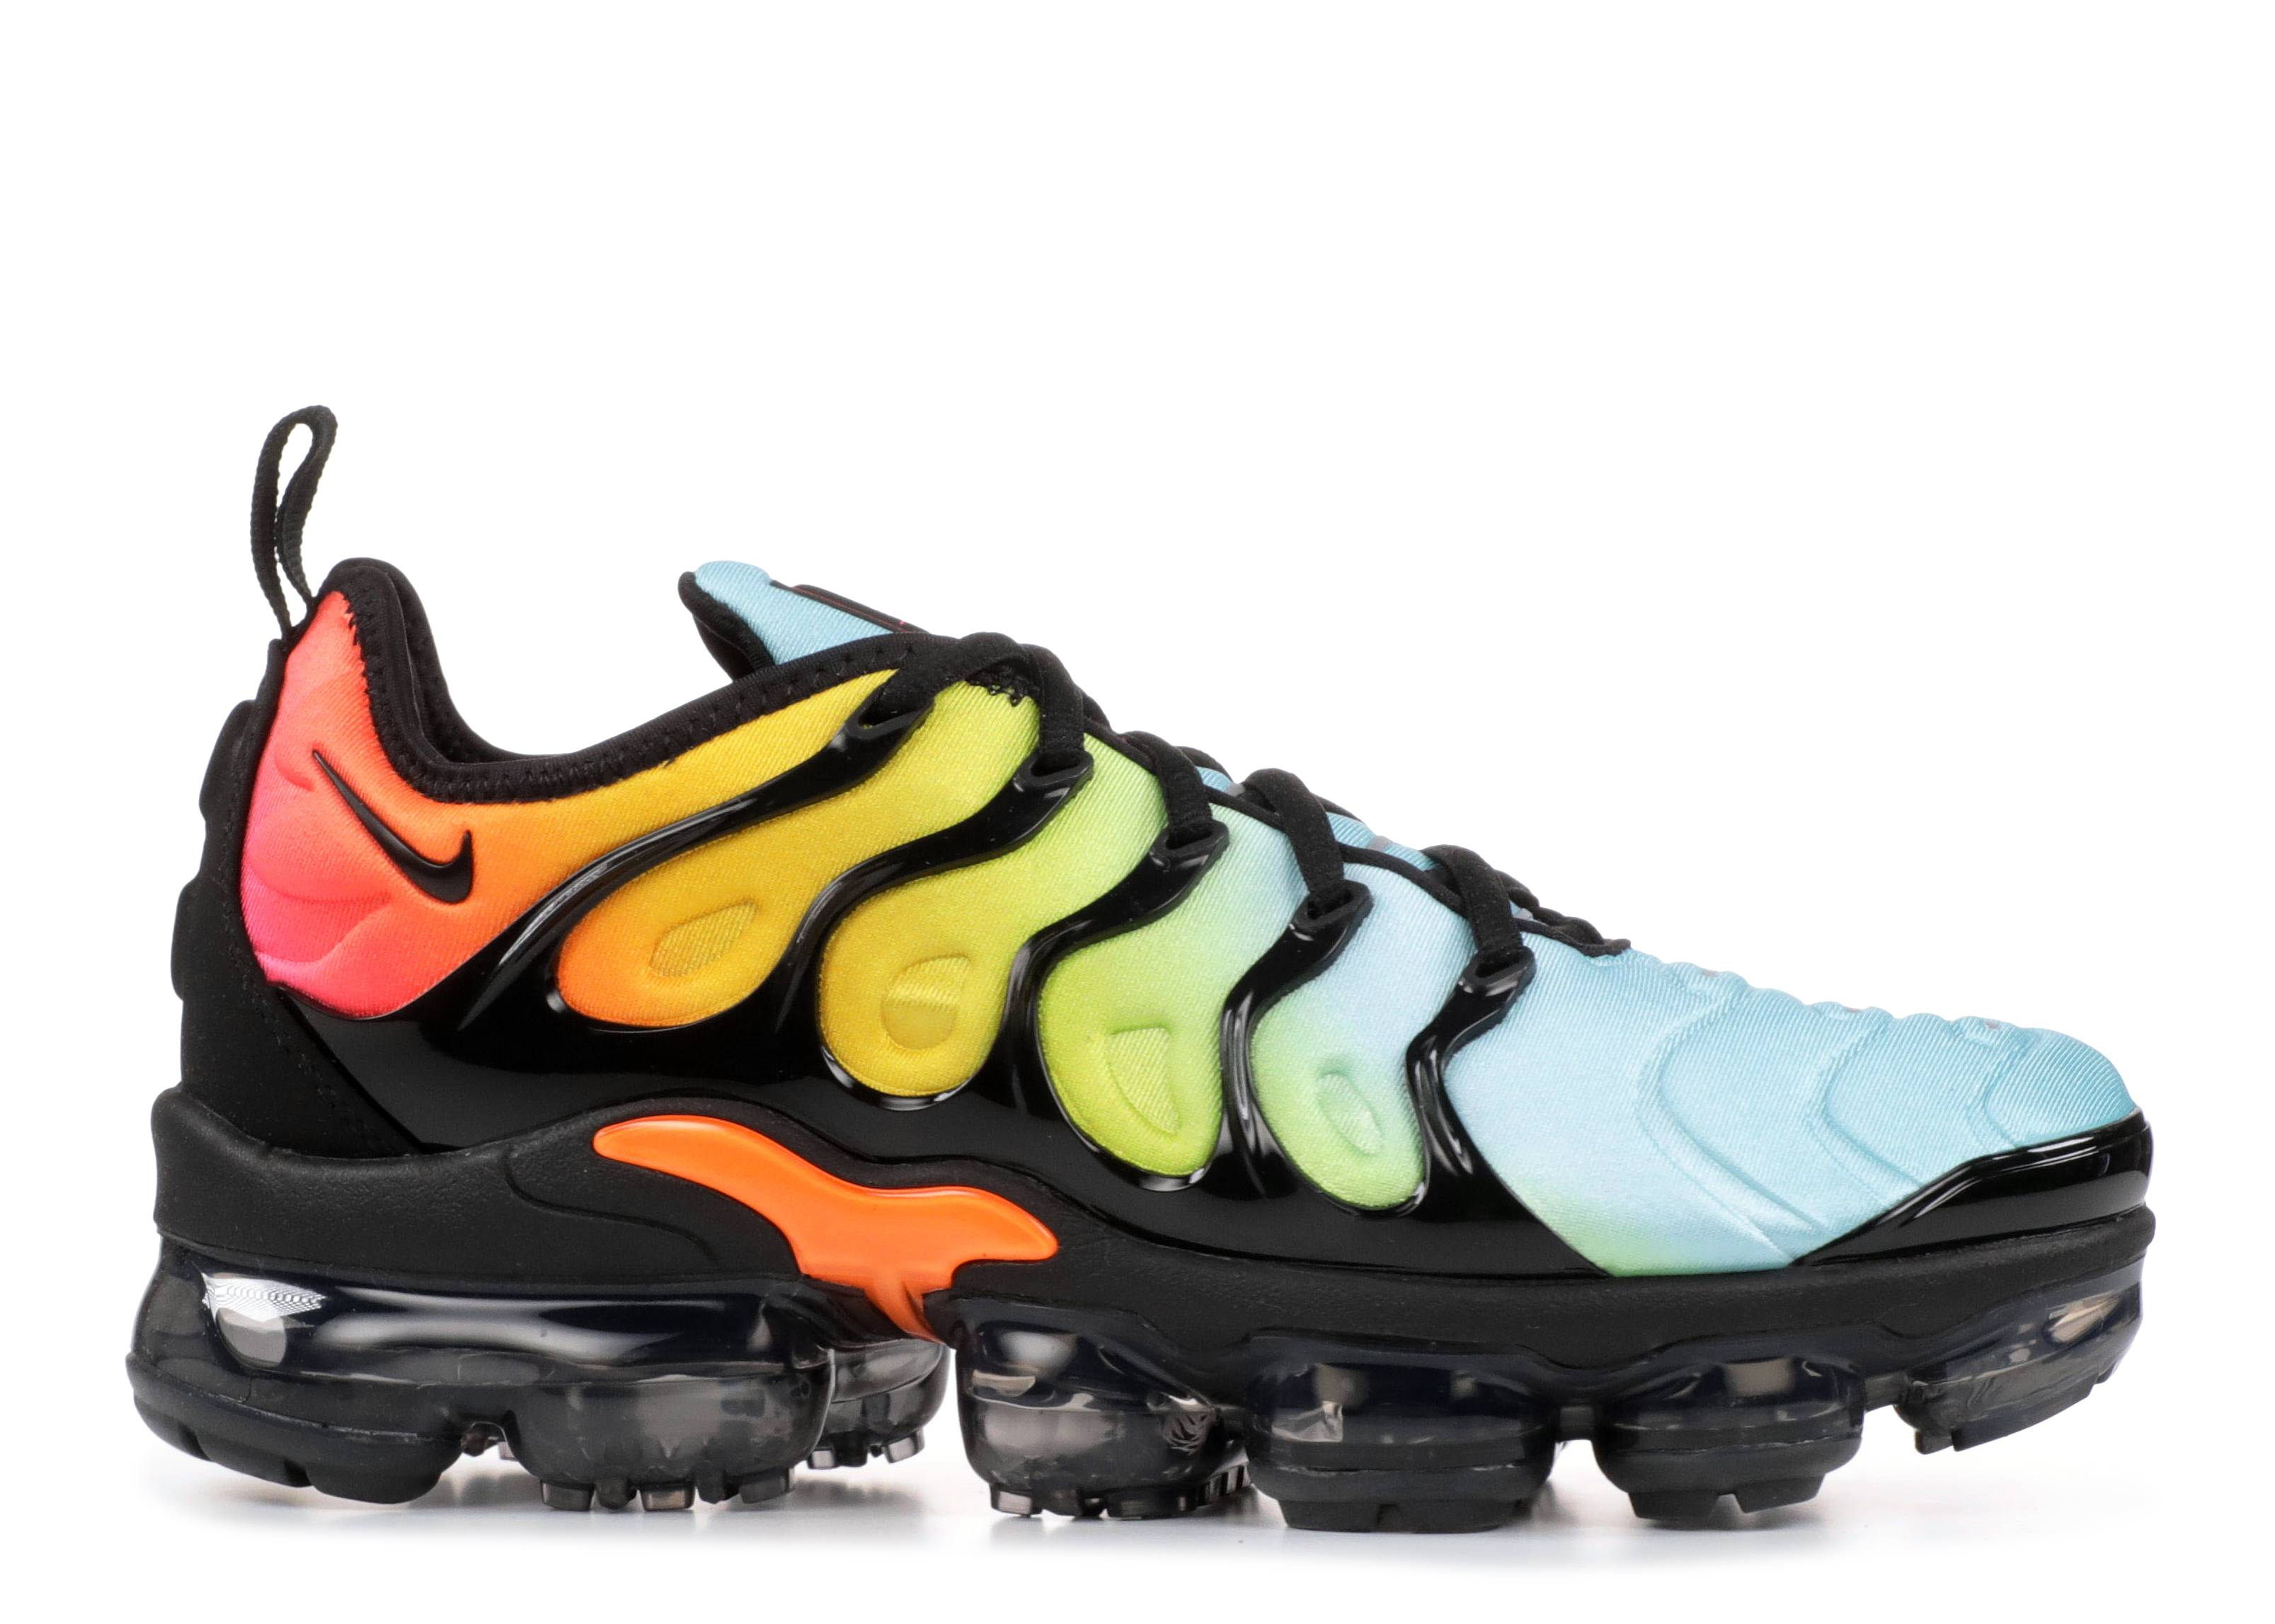 15e9b1a60b W Air Vapormax Plus - Nike - ao4550 002 - black/black-beached aqua ...